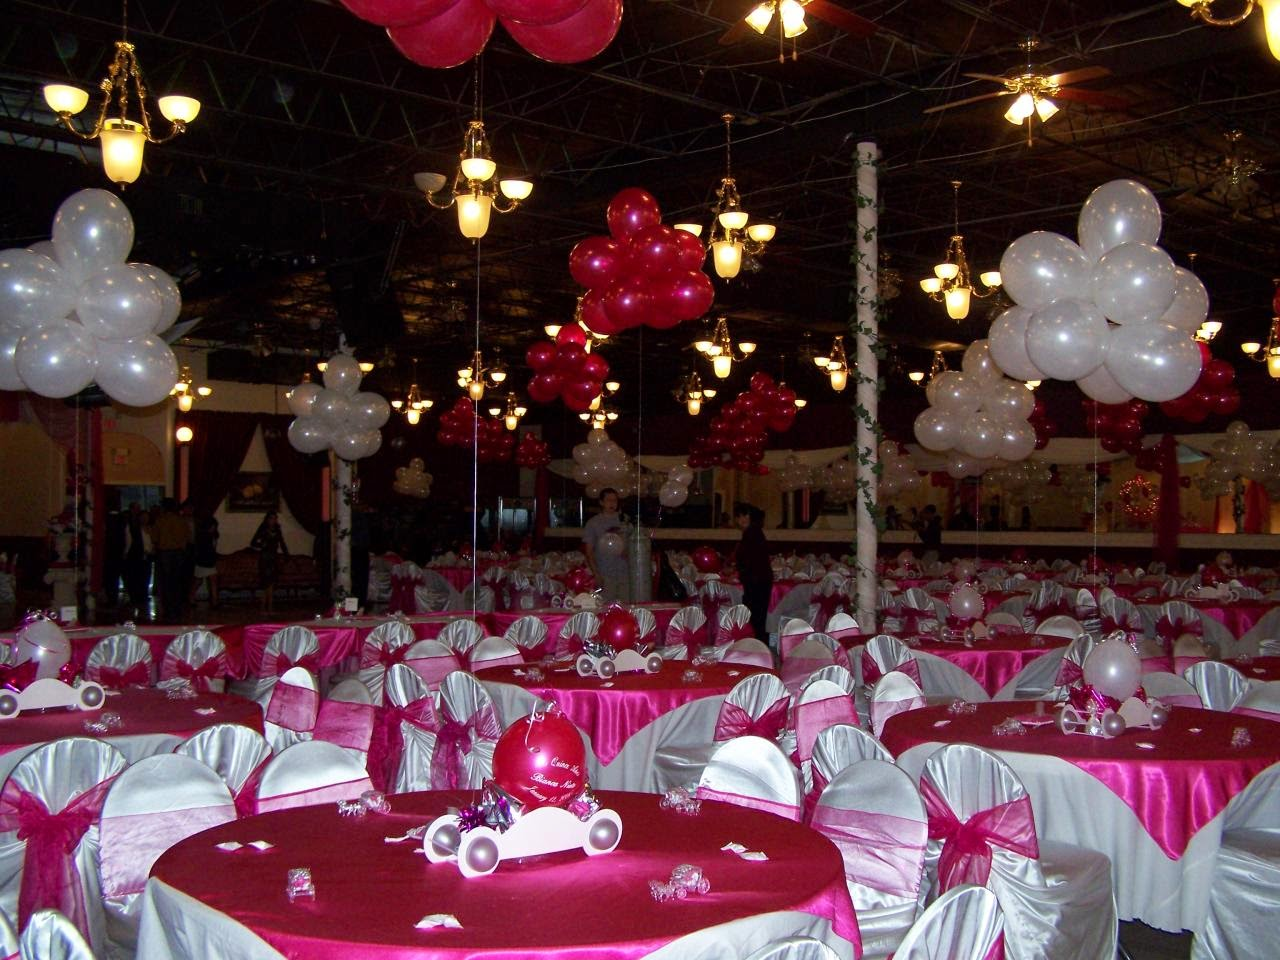 15co 5002 san bernardo laredo tx 78041 great ideas to for Balloon decoration ideas for a quinceanera